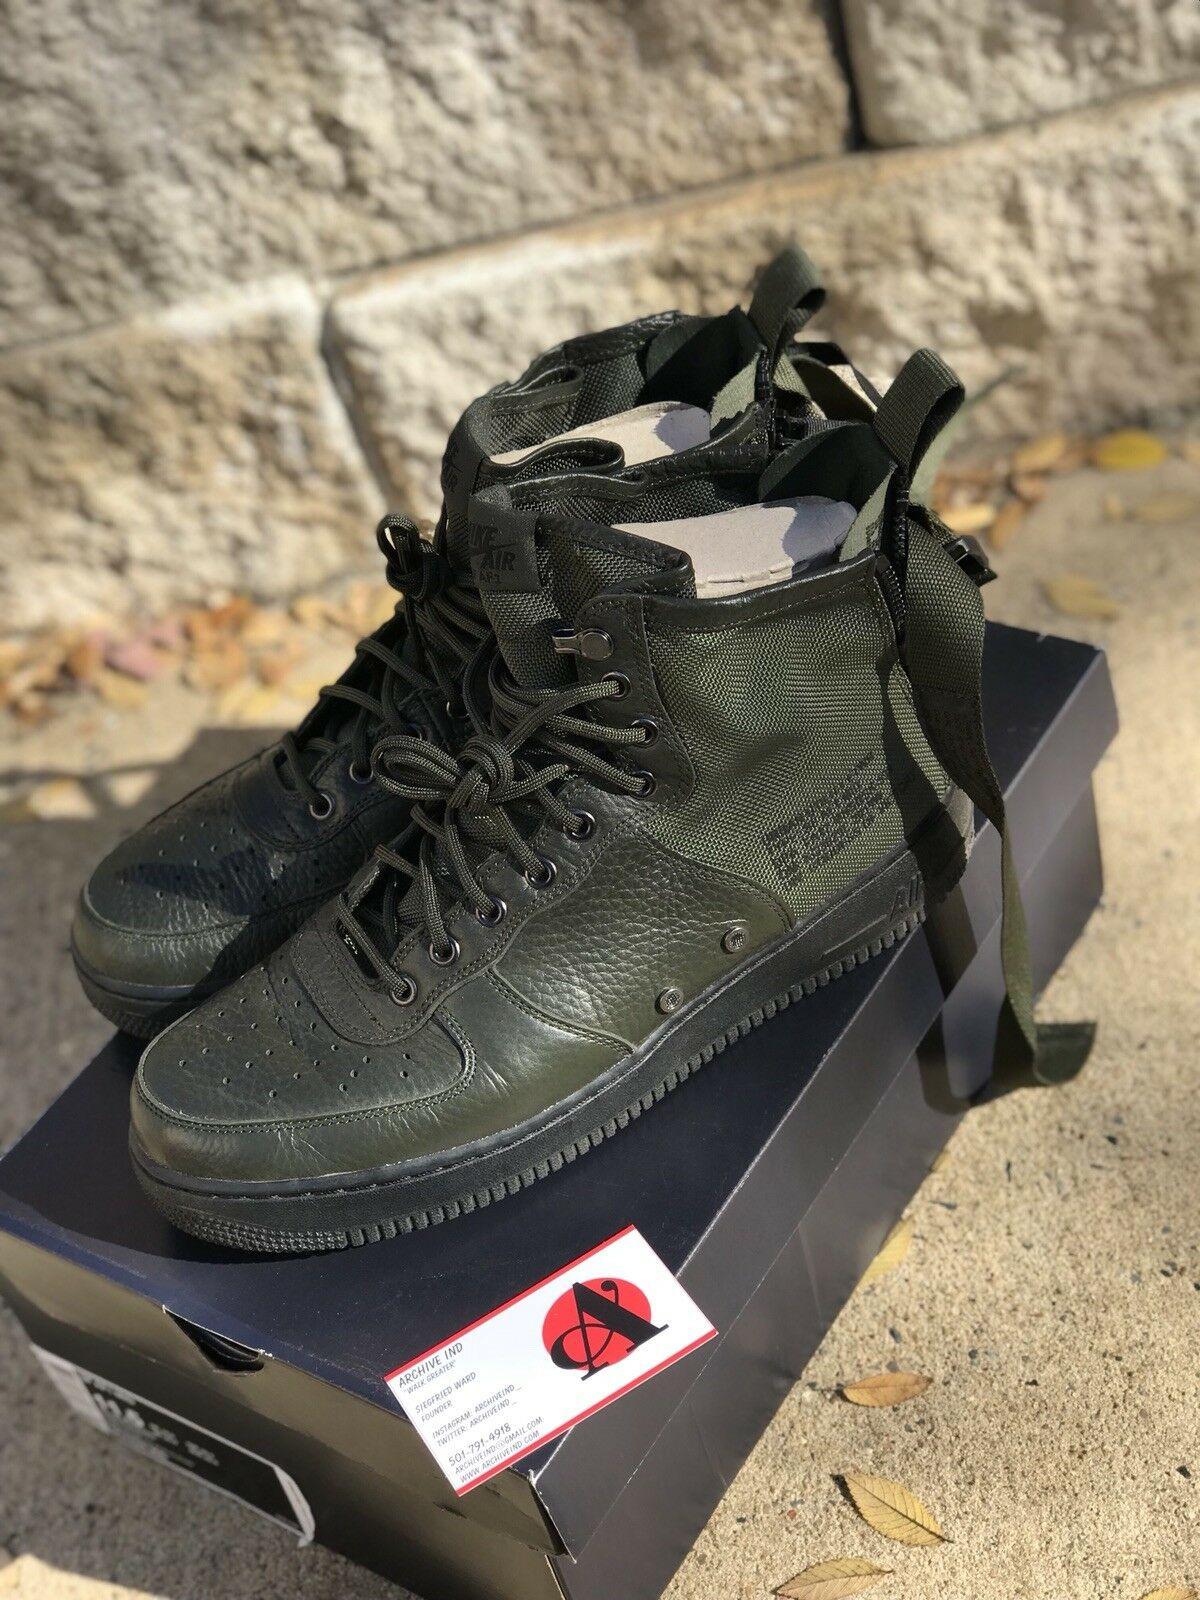 nike SF Air Force 1 Mid Special Forces Black Dark Hazel US MENS SIZES 917753-002 The most popular shoes for men and women